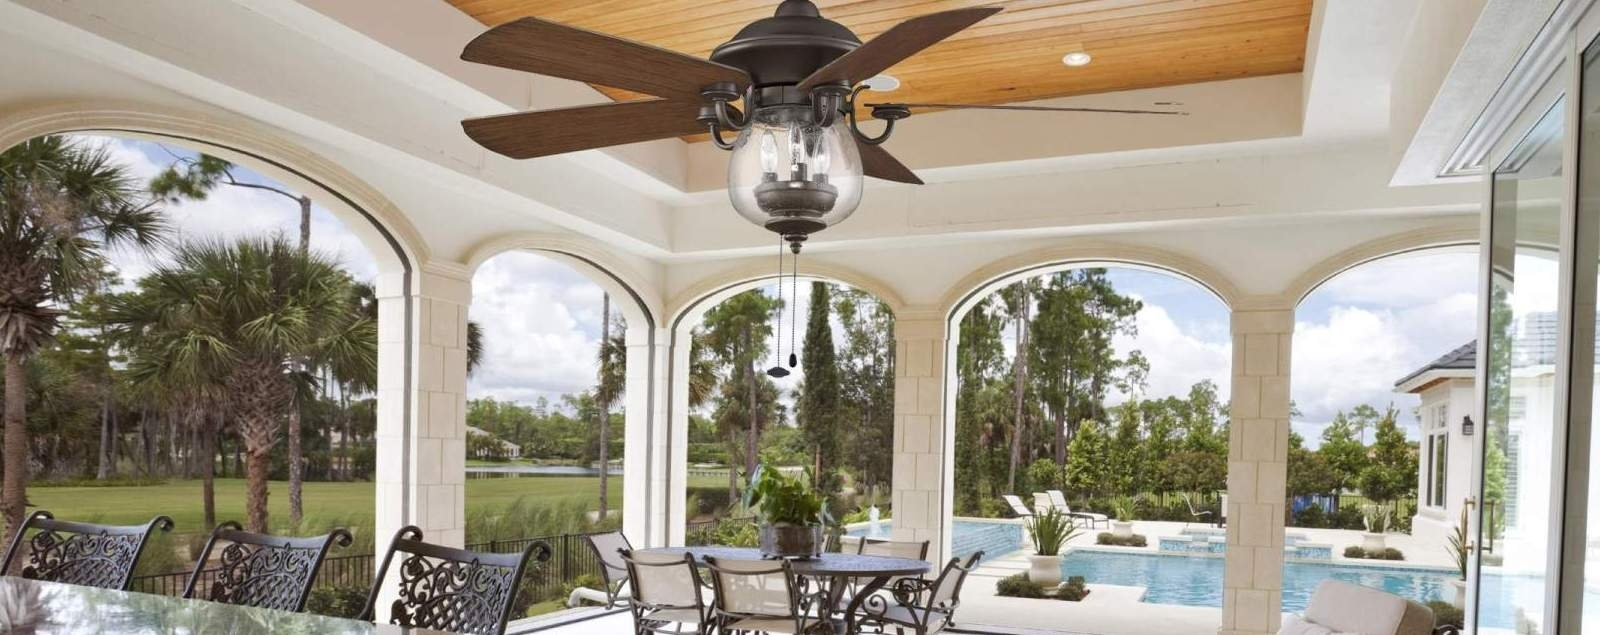 Rust Proof Outdoor Ceiling Fans With Best And Newest Outdoor Ceiling Fans – Shop Wet, Dry, And Damp Rated Outdoor Fans (View 15 of 20)